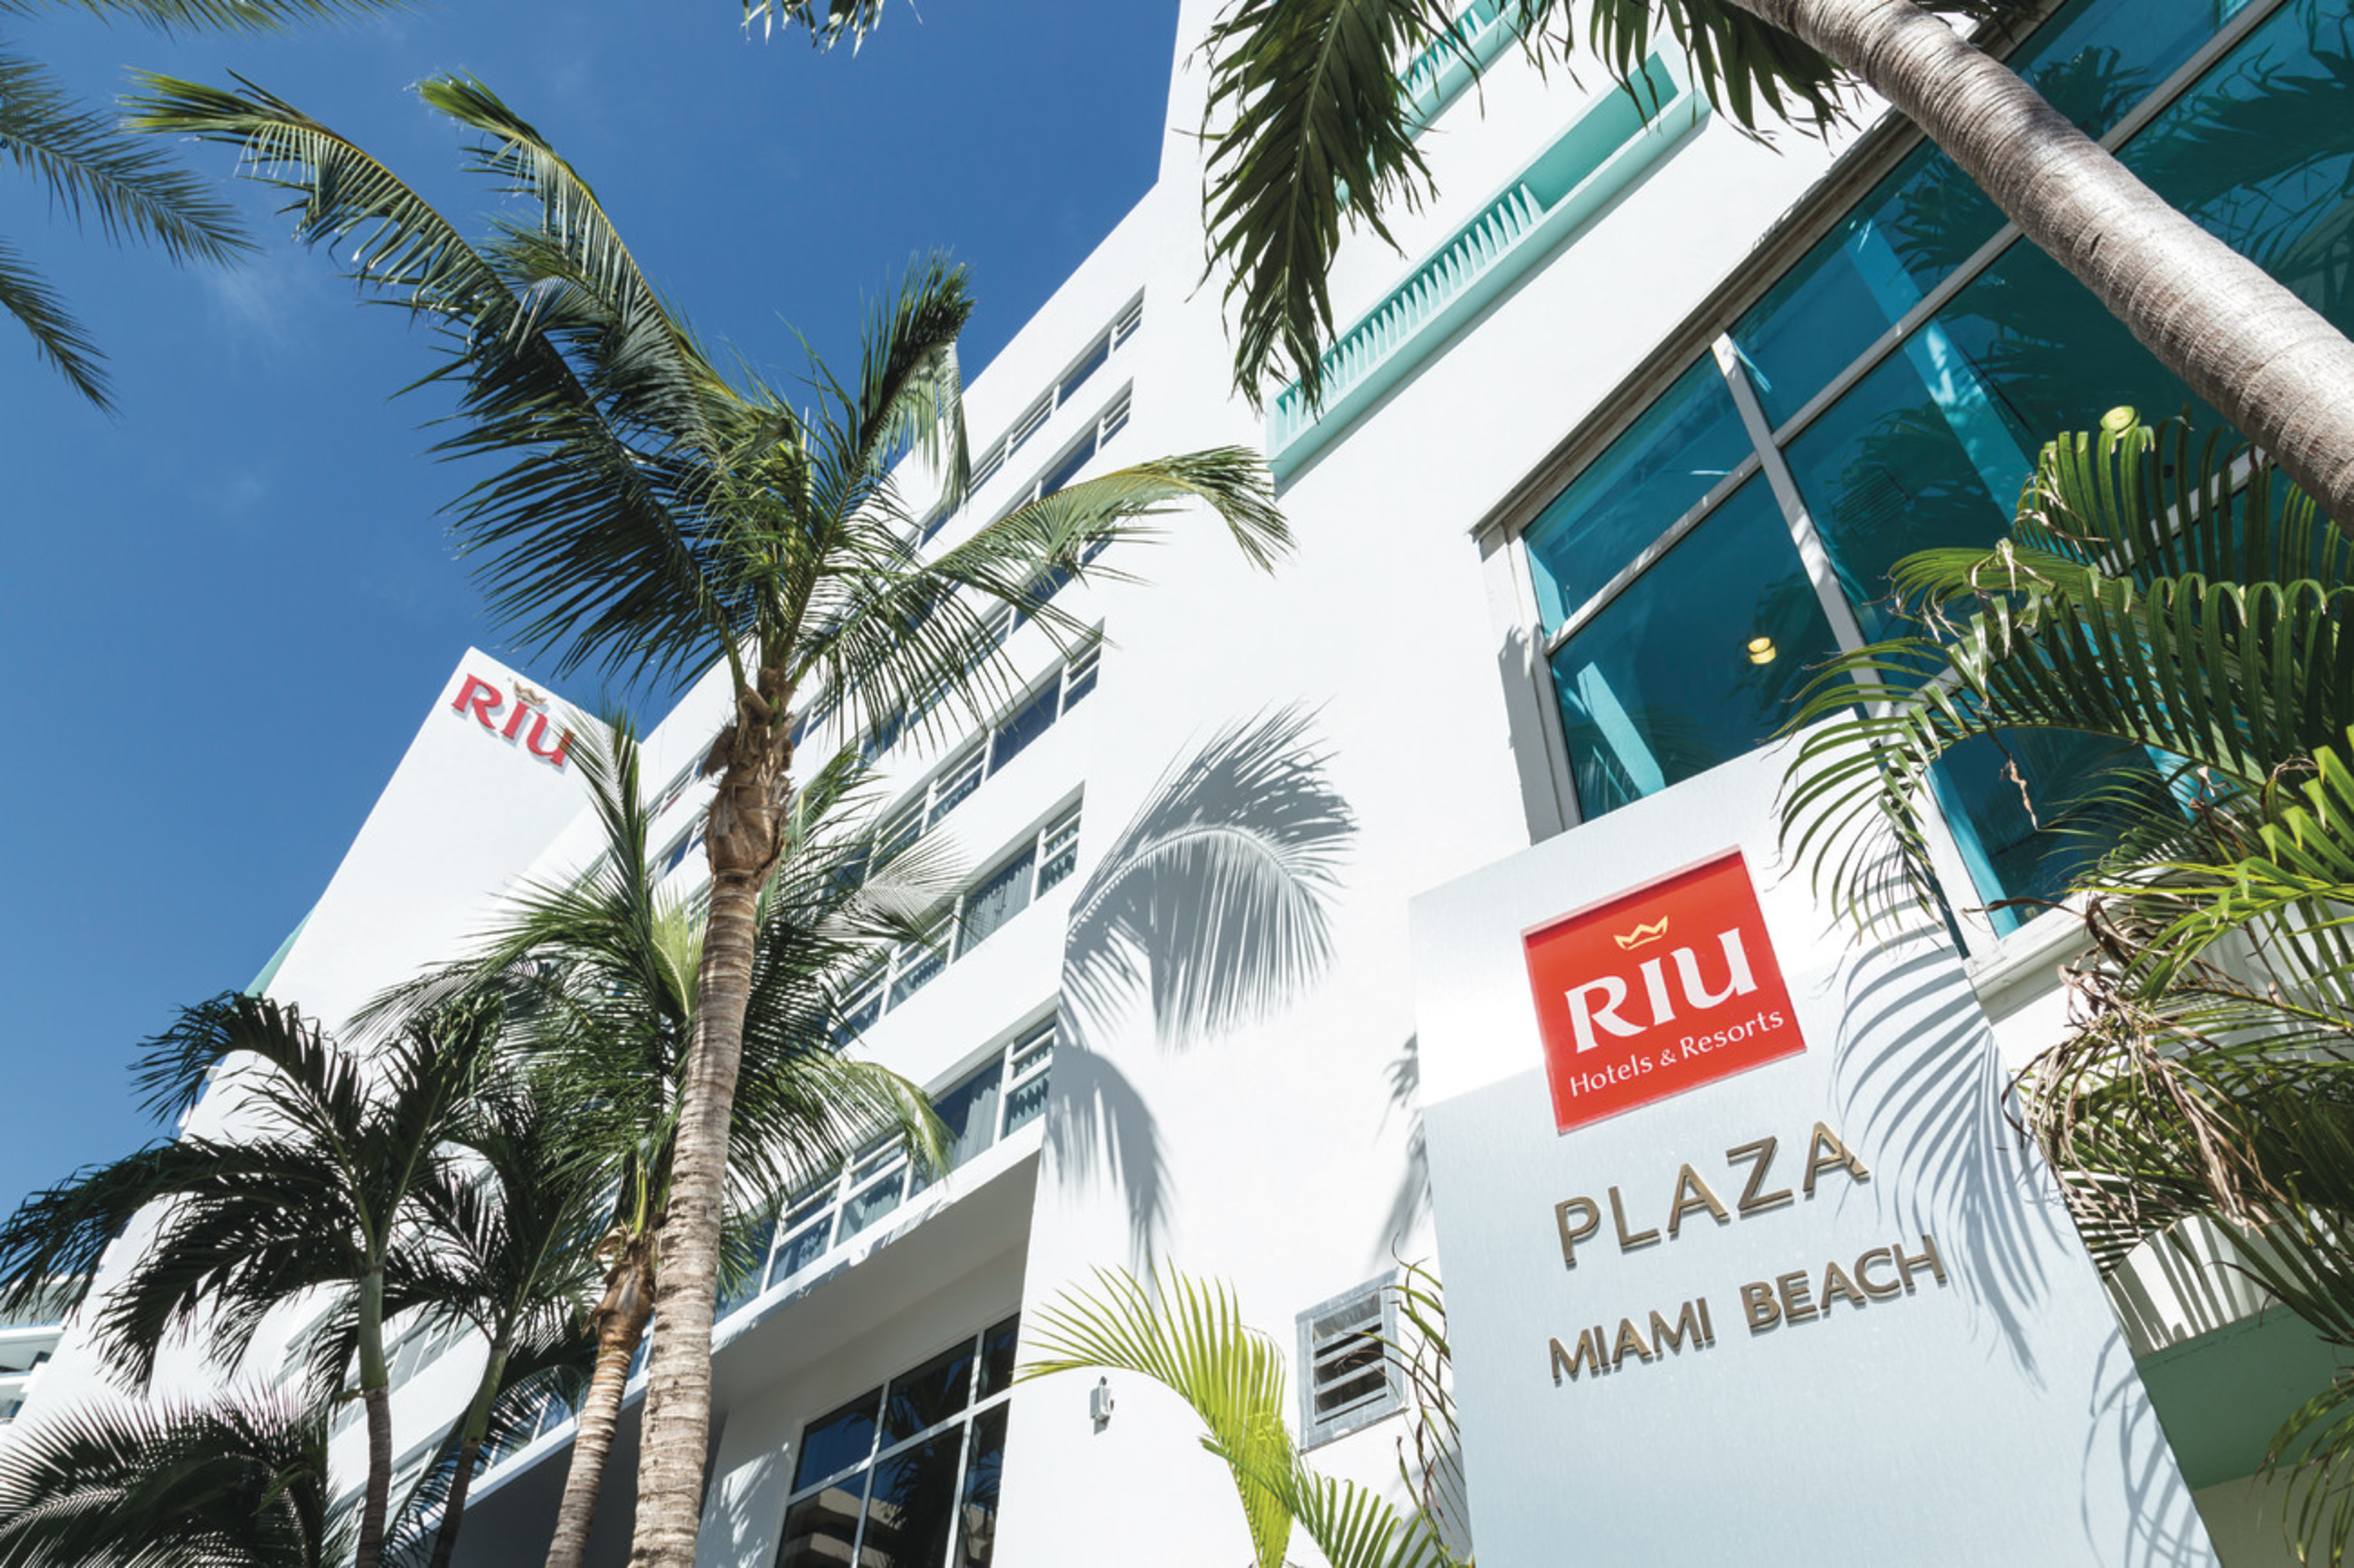 Among Its Varied And Diffe Neighbourhoods Is South Beach Where Our Riu Plaza Miami Hotel Located